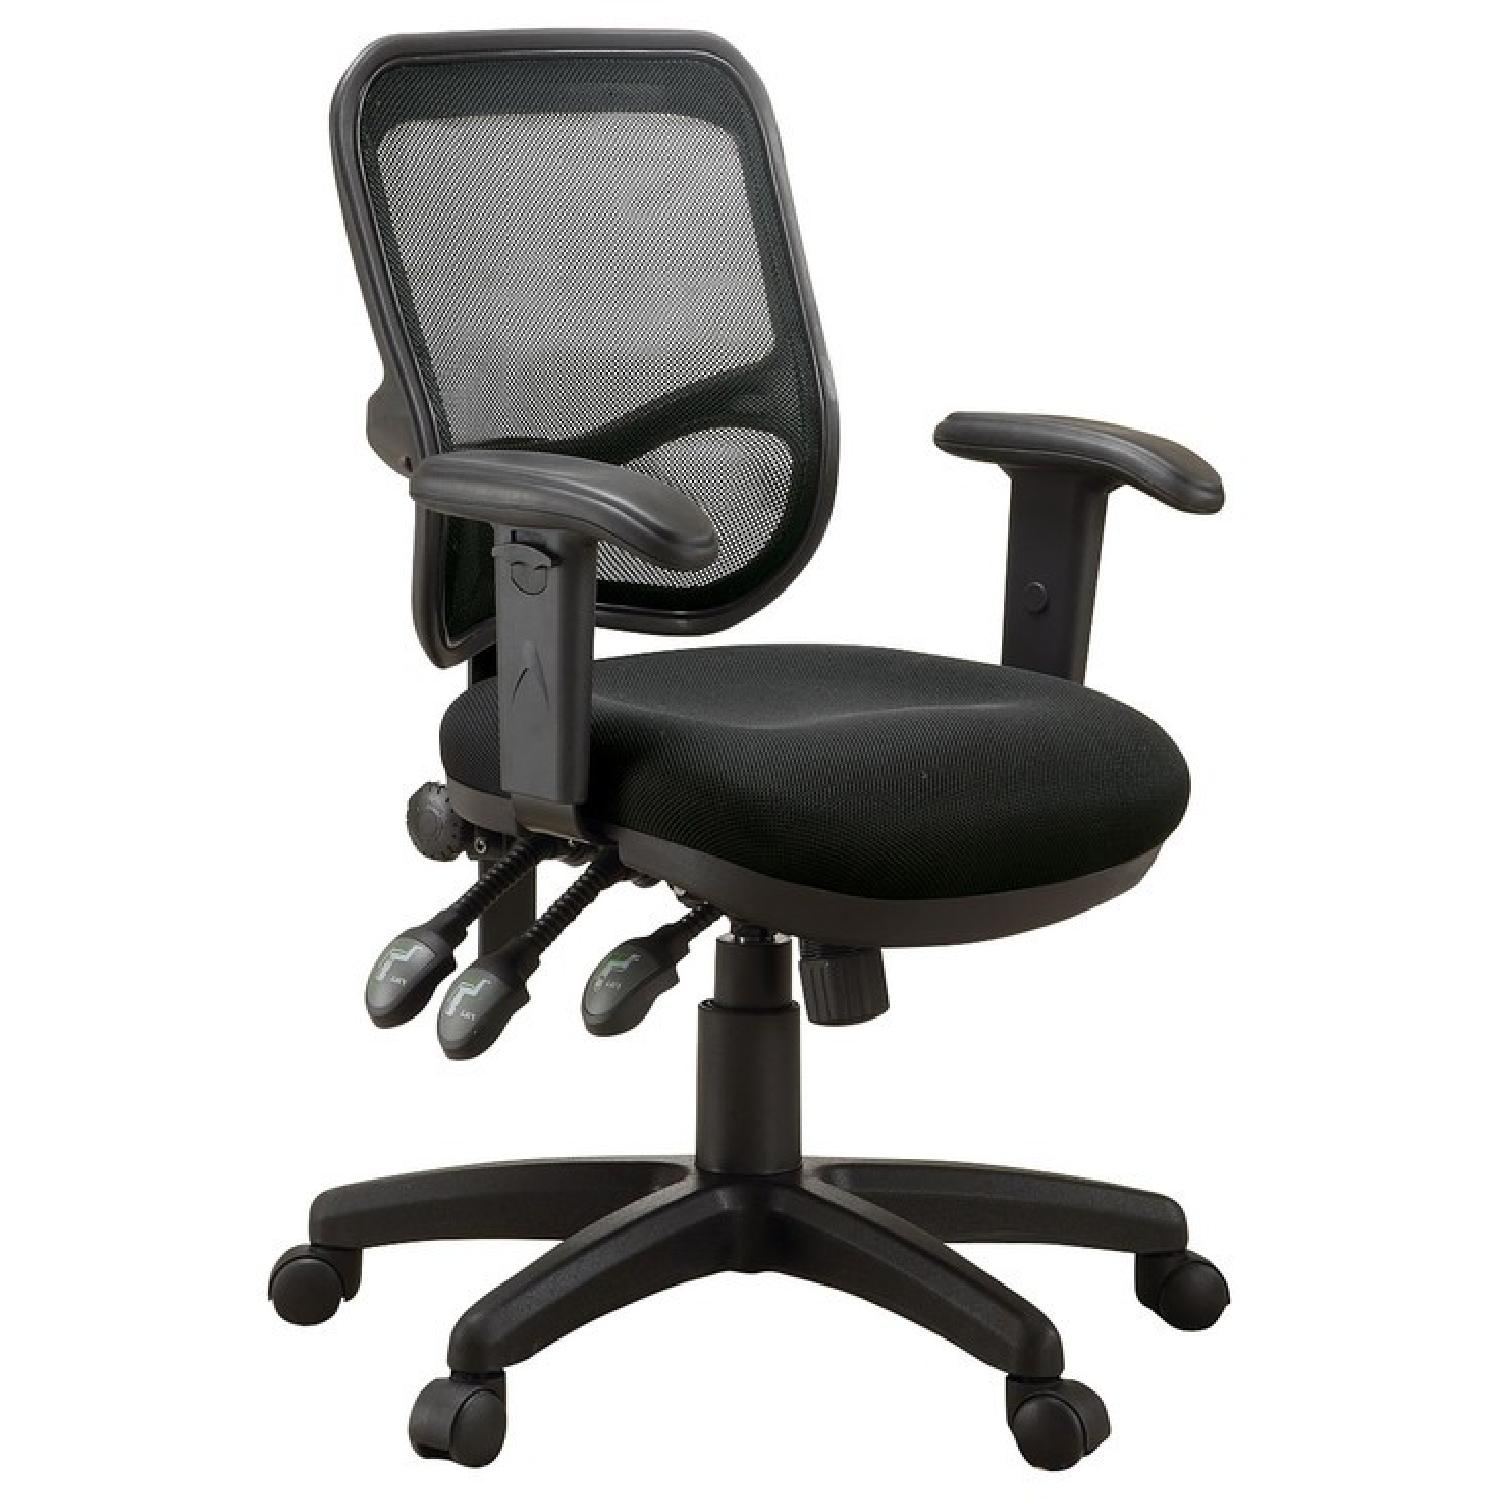 Contemporary Adjustable Ergonomic Seat Office Chair w/ Mesh Back